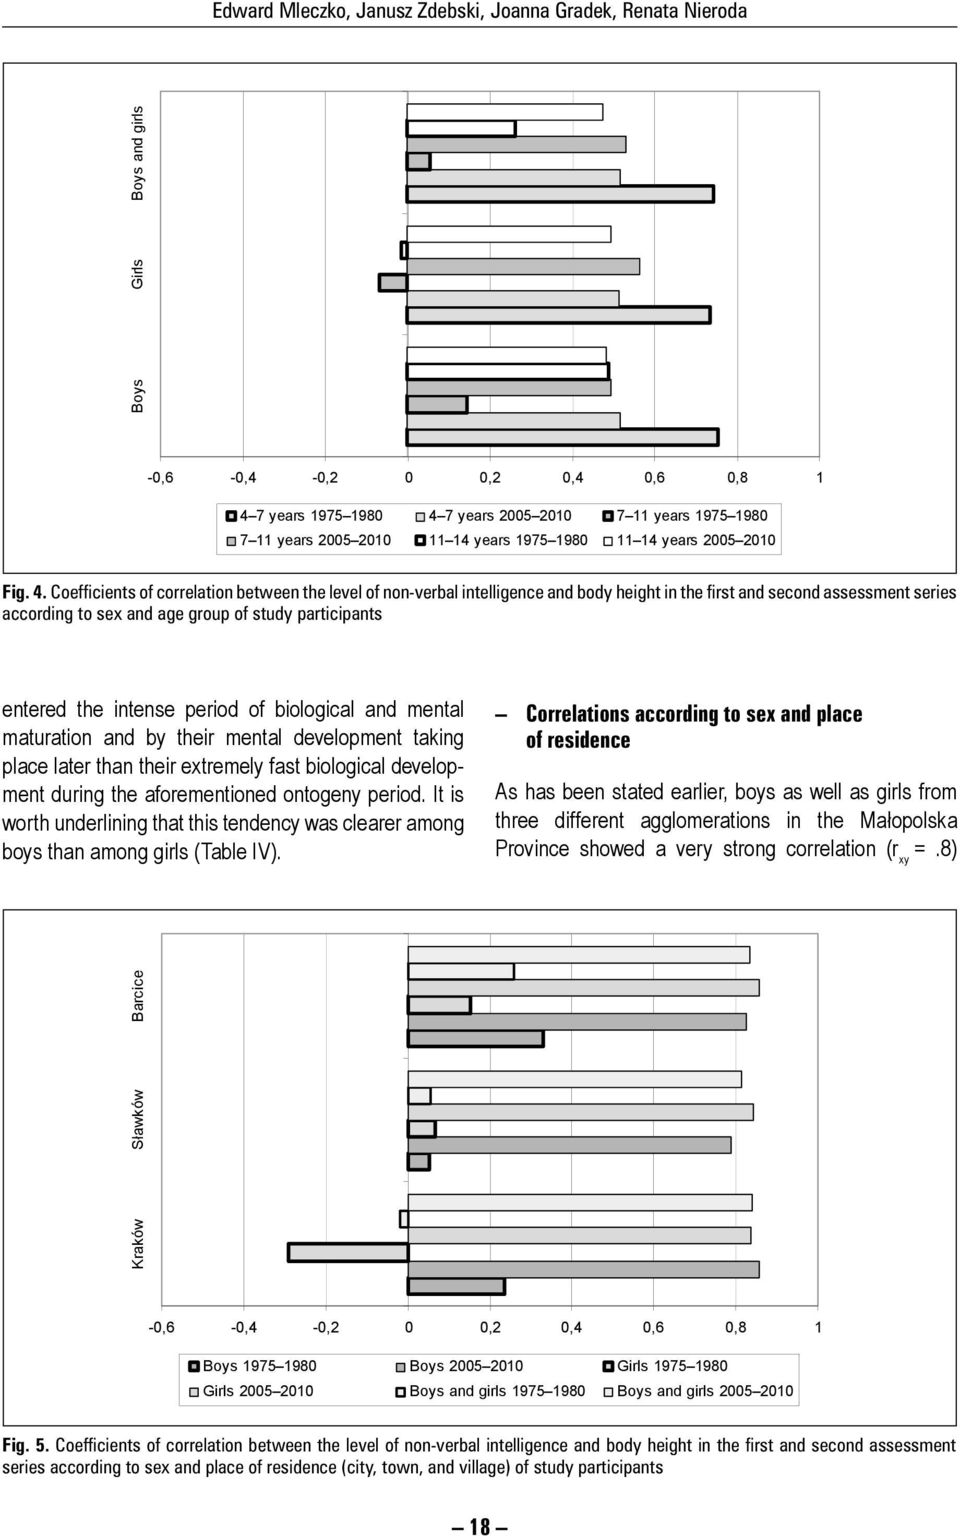 Coefficients of correlation between the level of non-verbal intelligence and body height in the first and second assessment series according to sex and age group of study participants entered the